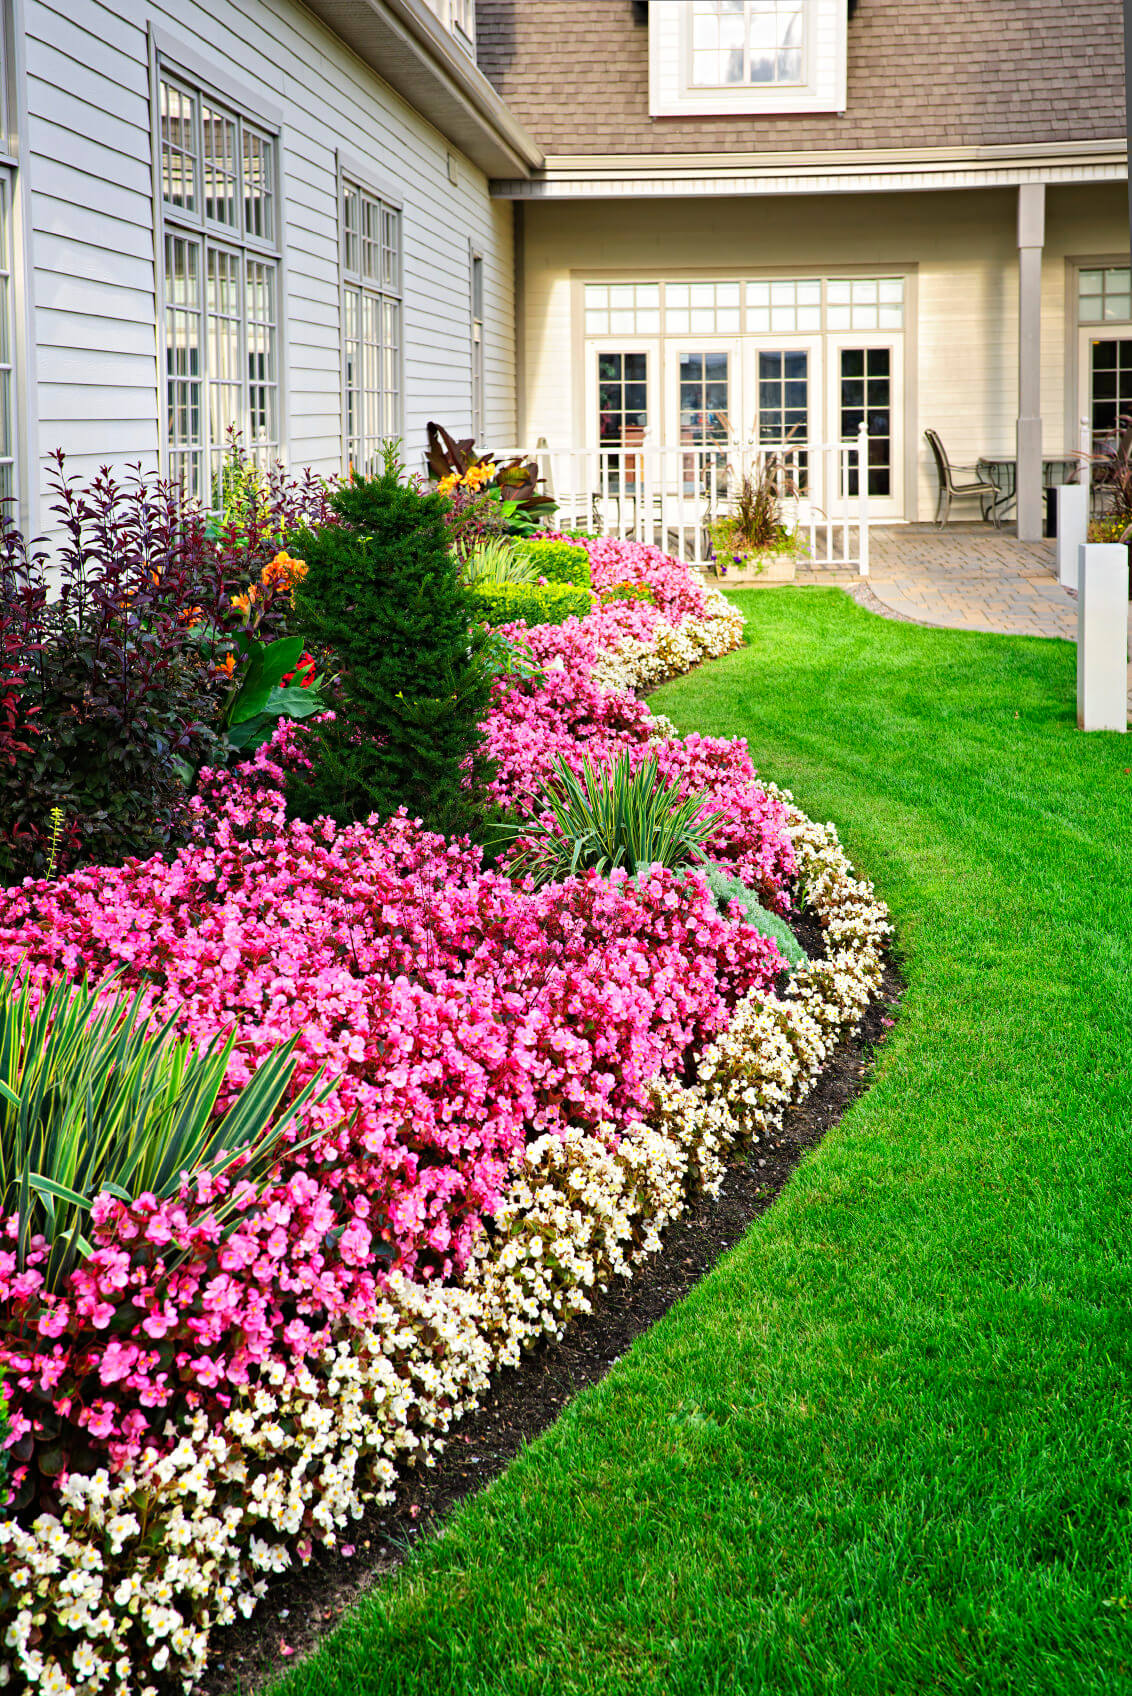 101 front yard garden ideas awesome photos for Front yard flower garden ideas